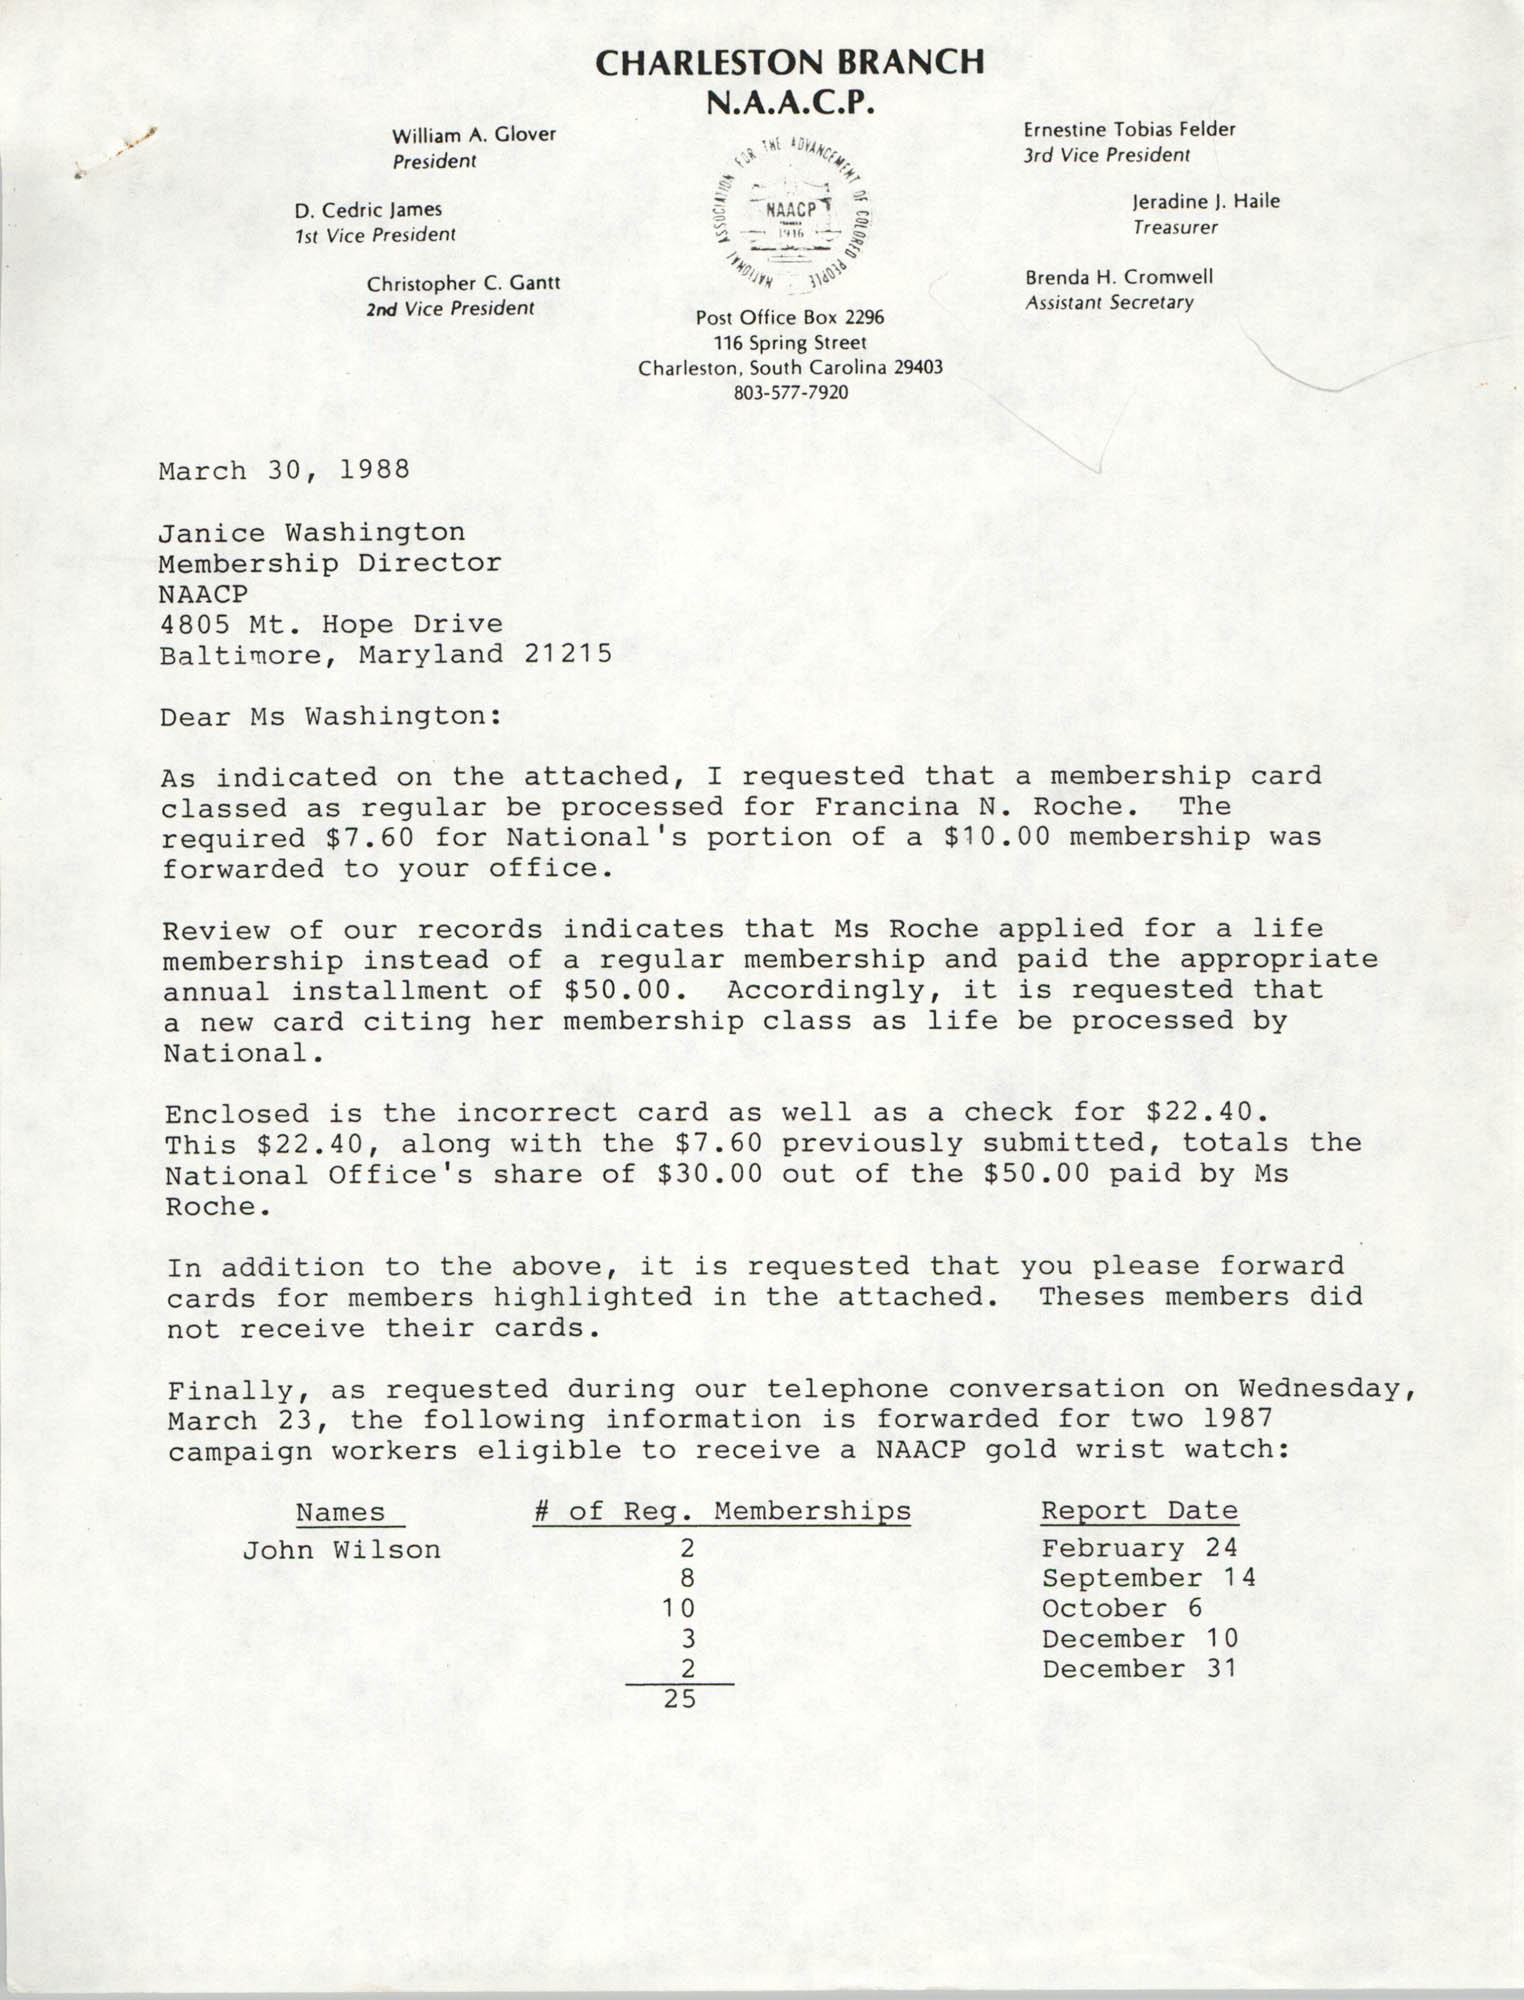 Letter from Brenda H. Cromwell to Janice Washington, March 30, 1988